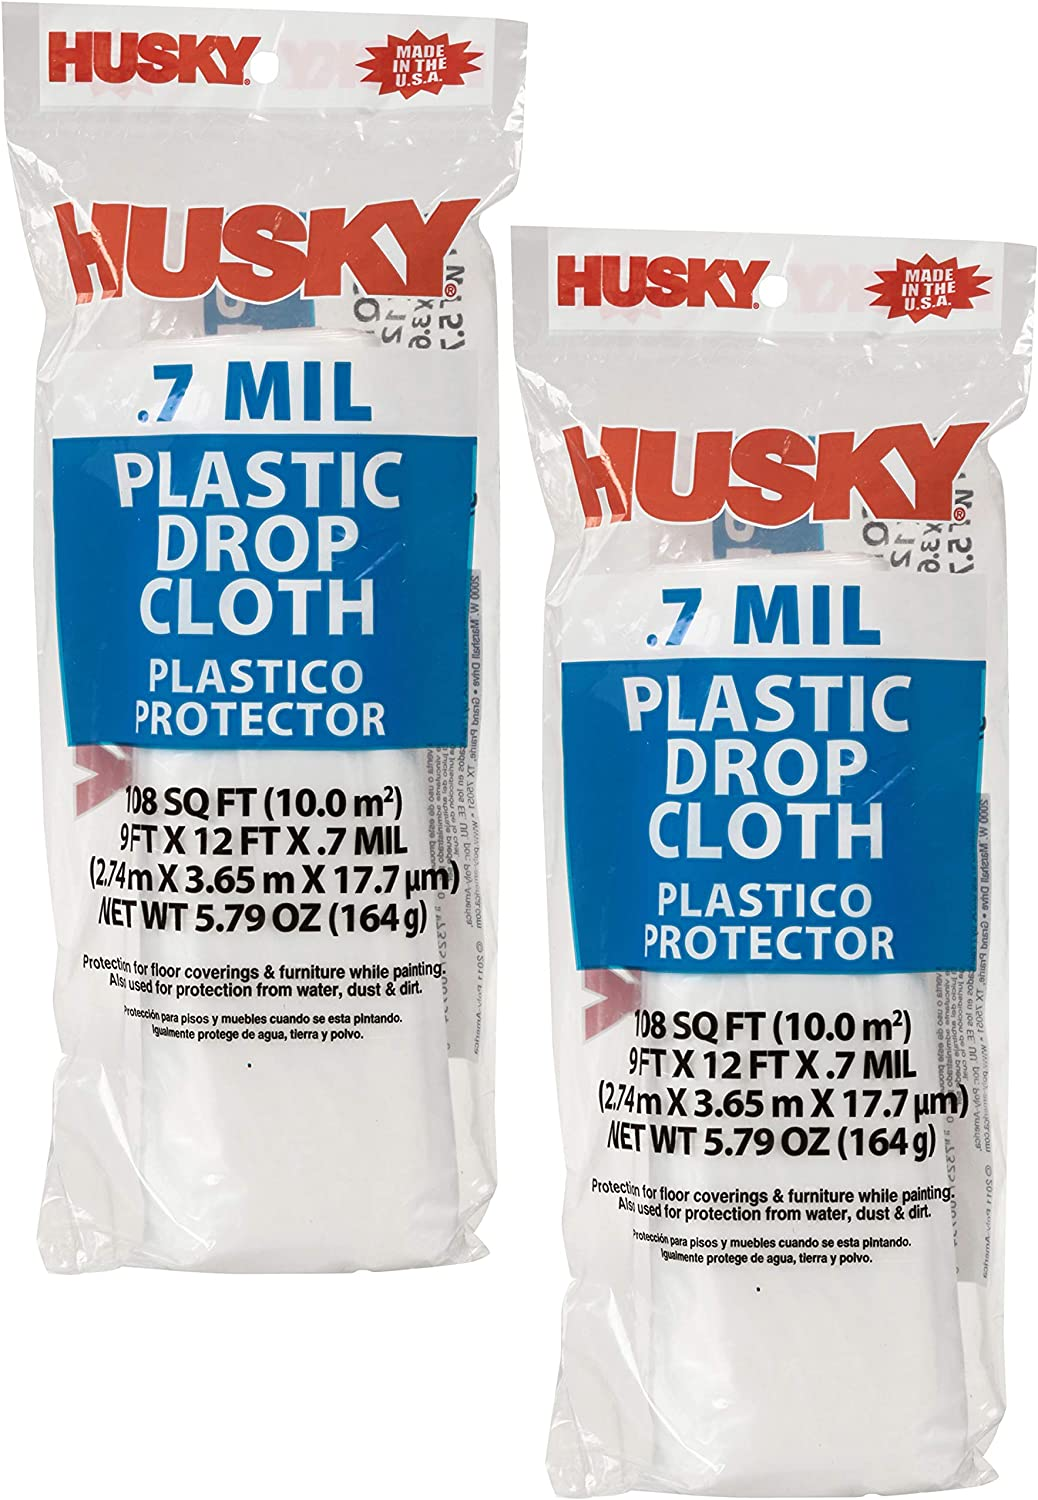 2 Pack Husky RS403-50C Plastic Sheeting Opaque 9 x 12 - .4 MIL 3 x 50